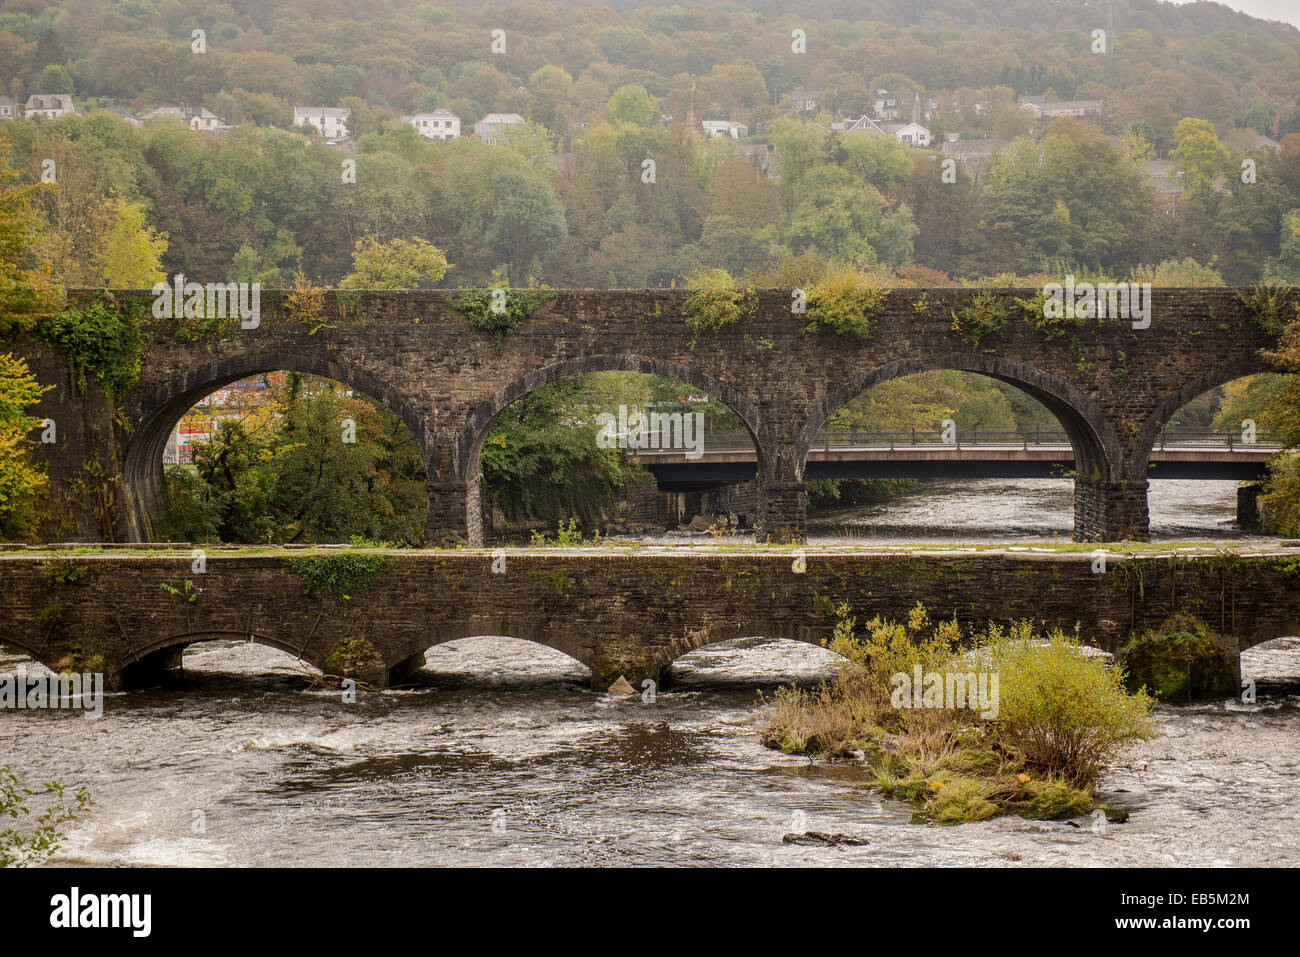 The railway bridge and Tennant Canal Aquaduct in Aberdulais, Neath, Wales,UK - Stock Image